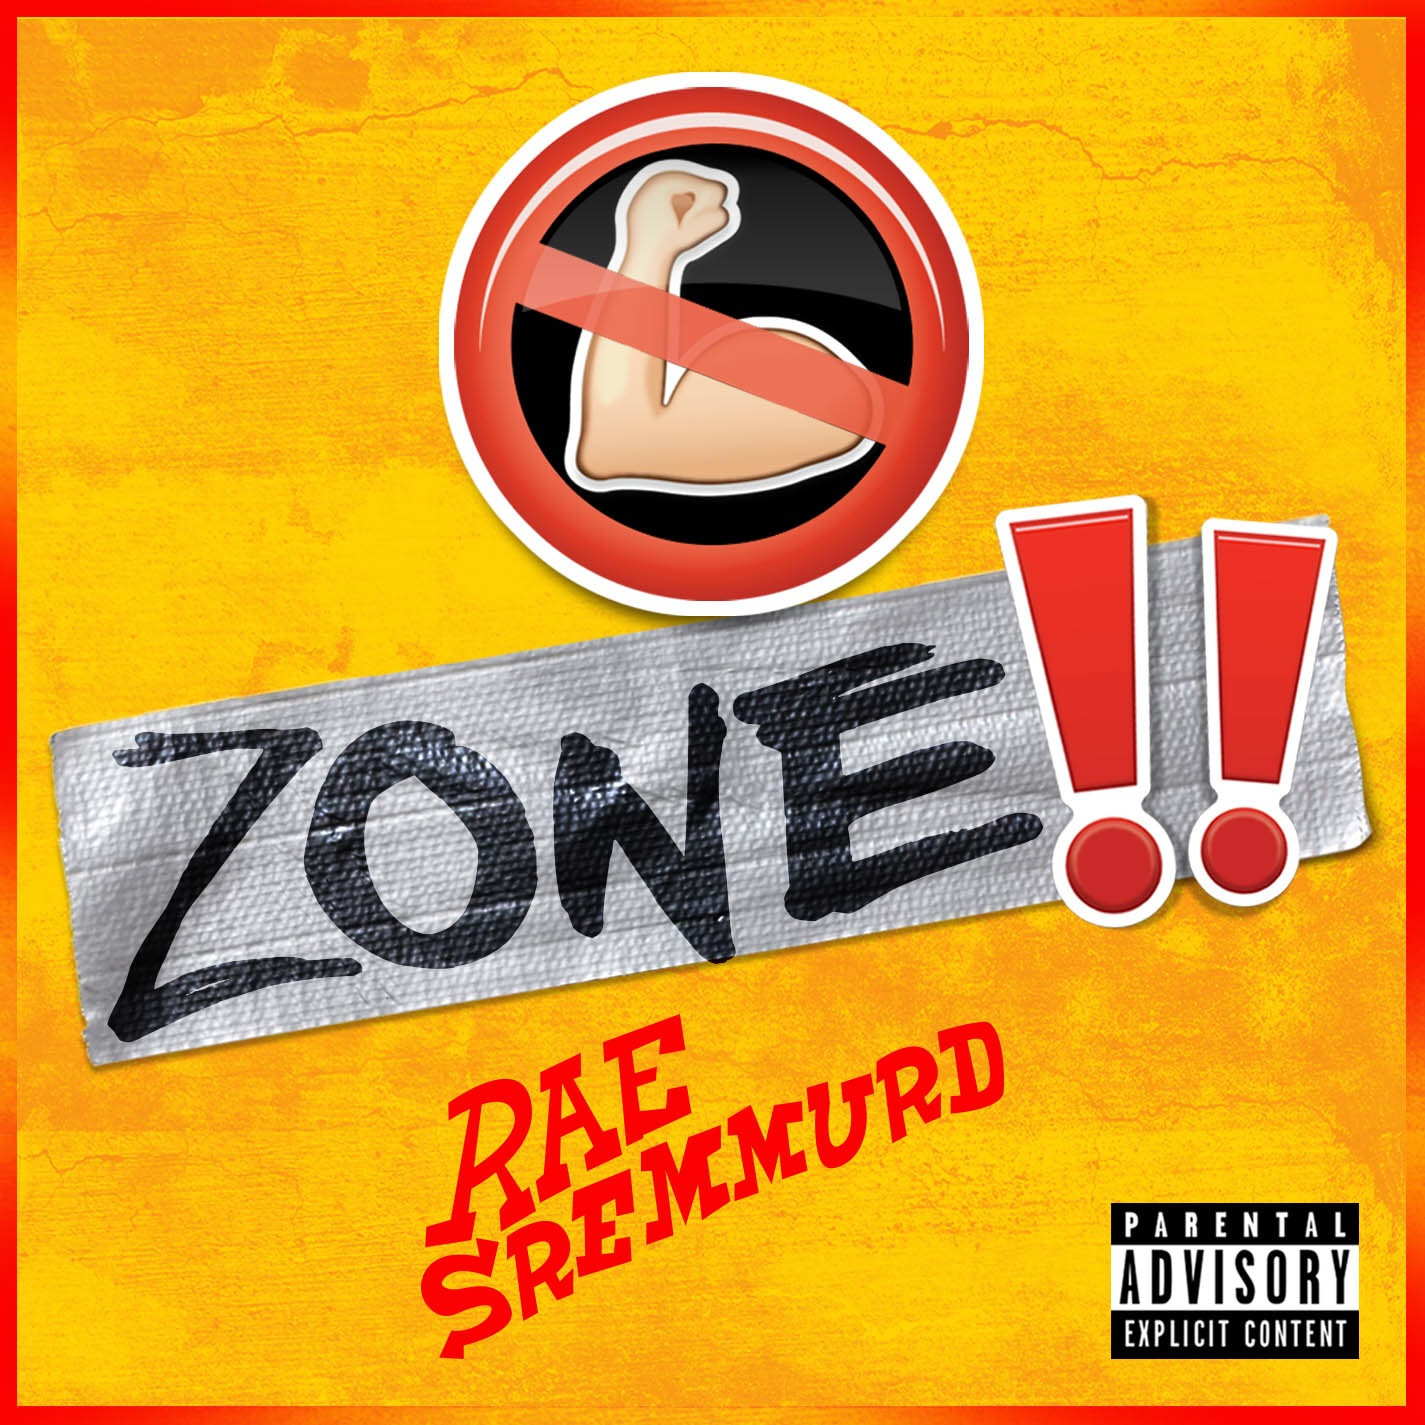 rae sremmurd sremmlife 2 download rar